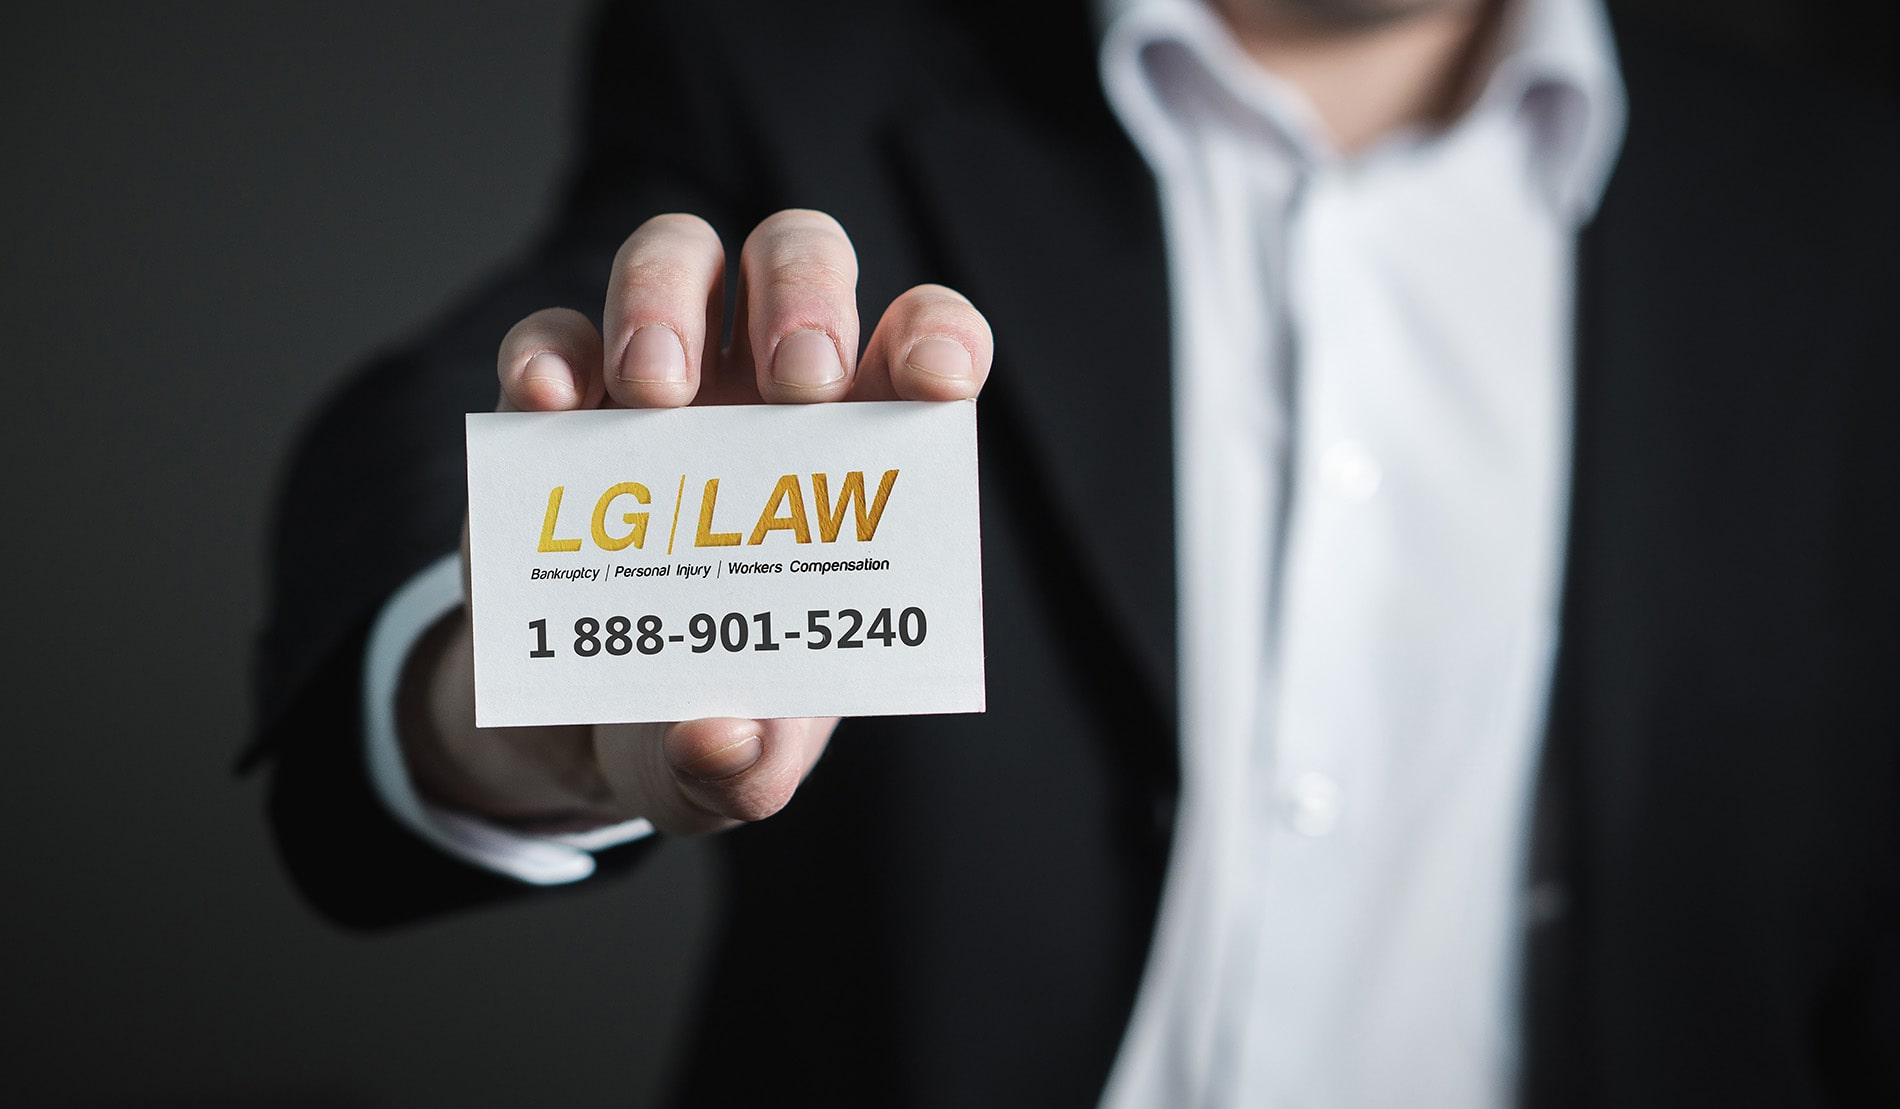 LG LAW Now Helping Work Injury Clients in the City of Fontana